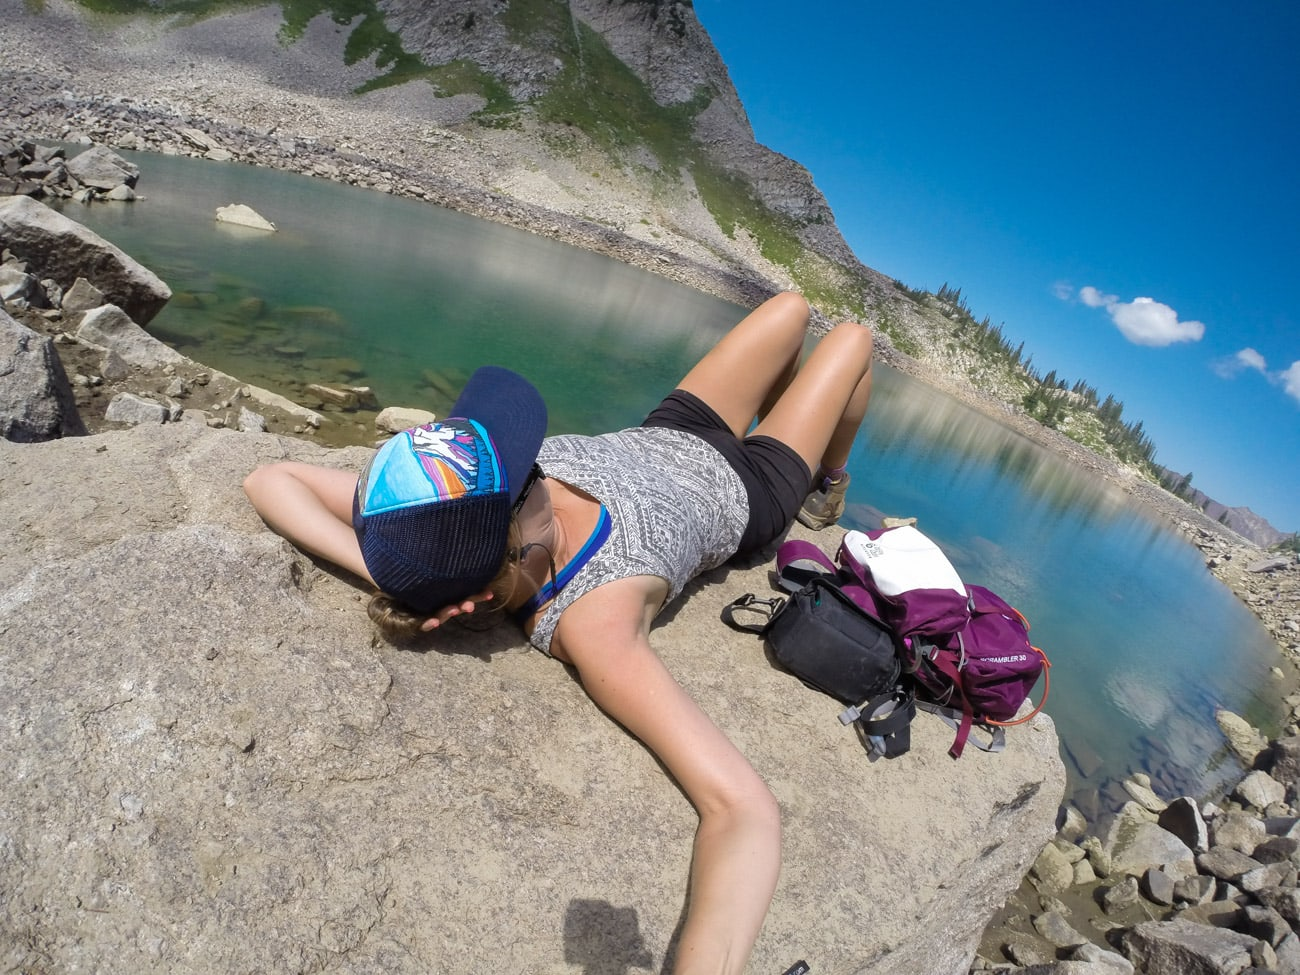 GoPro shot from a solo hike to White Pine Lake above Salt Lake City, Utah // Learn my favorite GoPro tips and tricks to improve your travel photography.